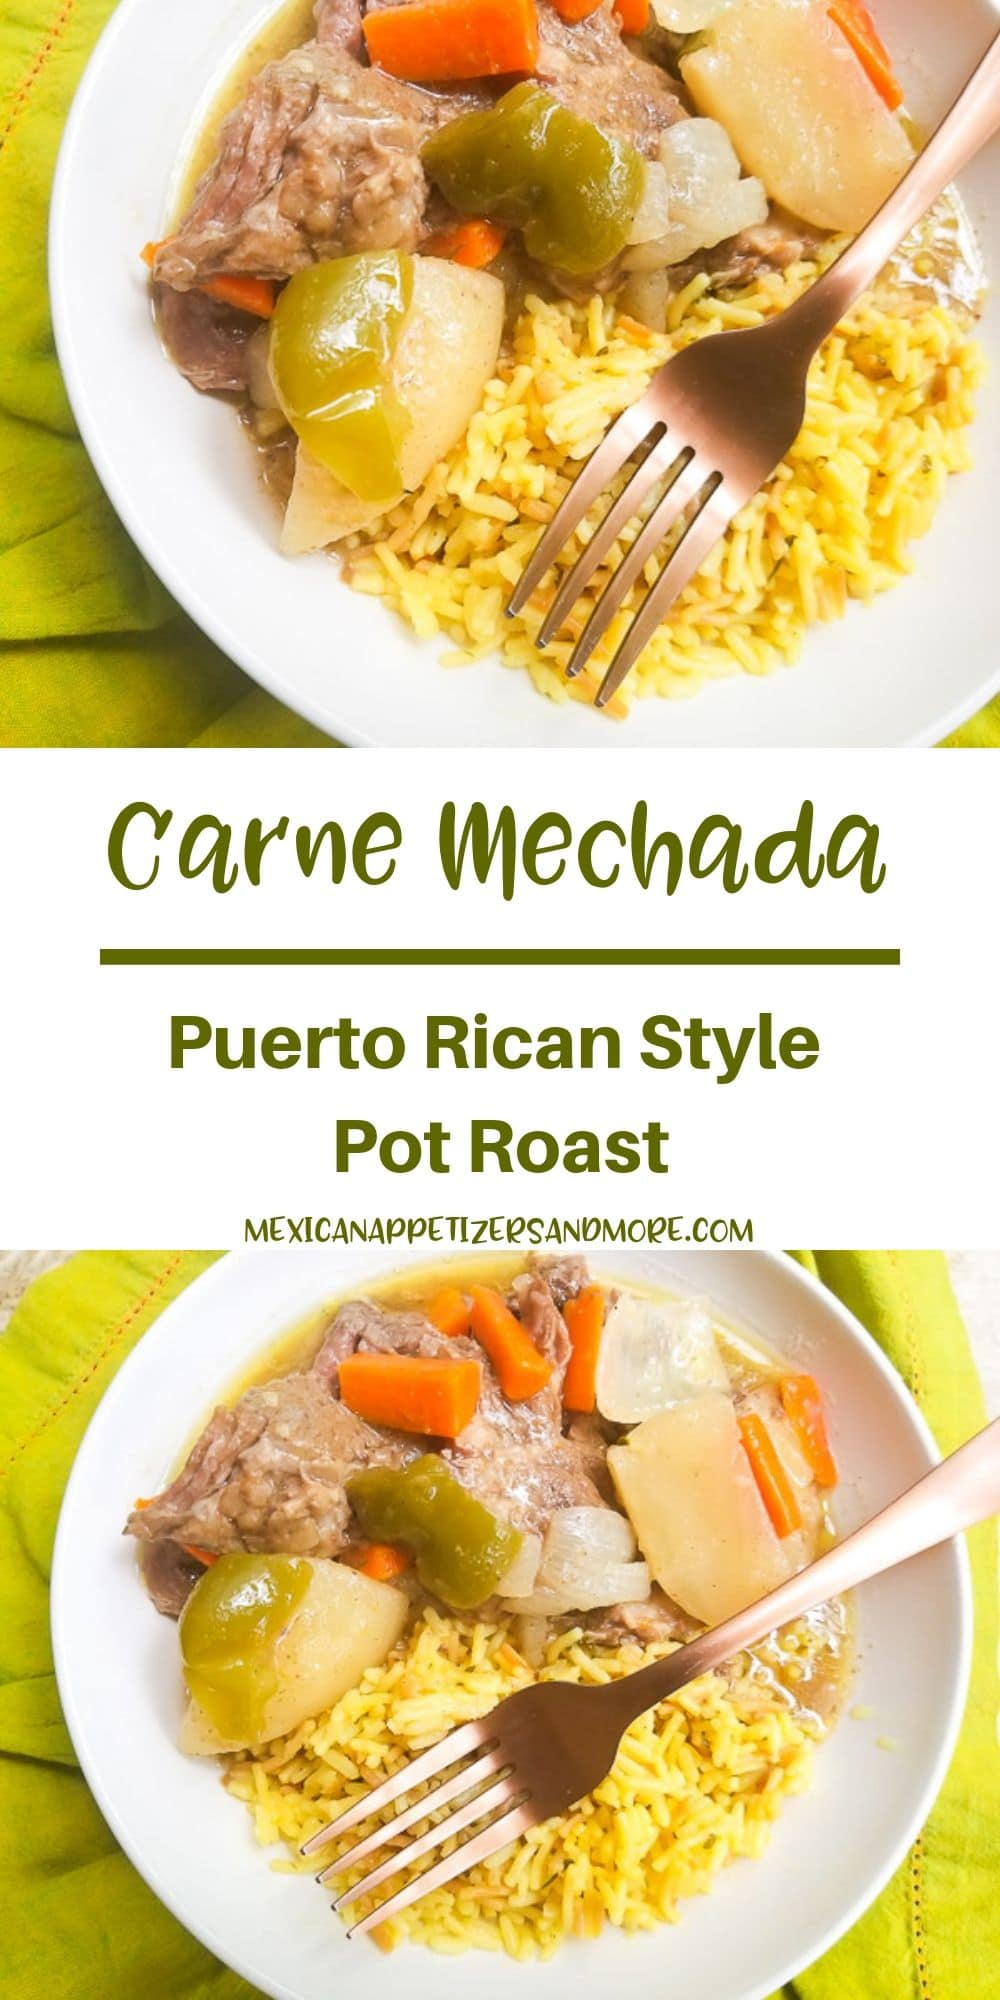 A delicious comforting dish of Carne Mechada (Puerto Rican Style Pot Roast) cooked in savory spices, yummy veggies and cooked to tender perfection in an instant pot.  Stove top and slow cooker directions included as well. #carnemechada #puertoricanpotroast #potroast #puertoricanrecipes #latinmeals #eyeroundroast #beefroast #holidays